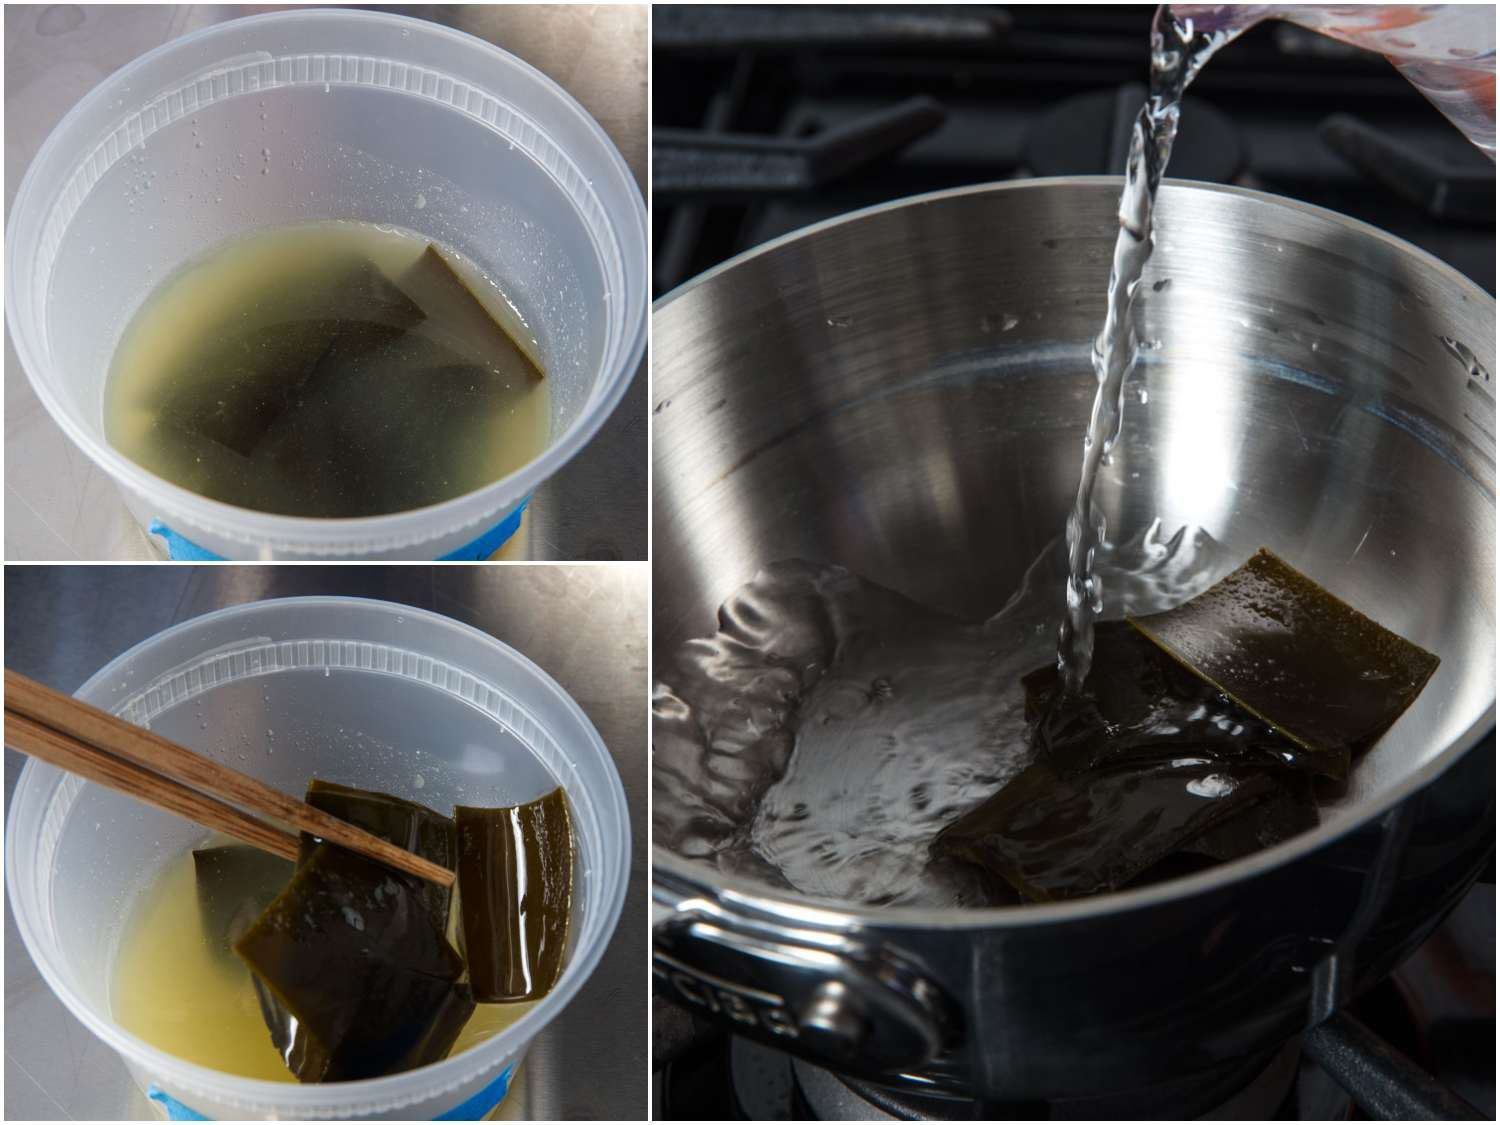 Collage of kombu being removed from shio tare and placed in pot with water